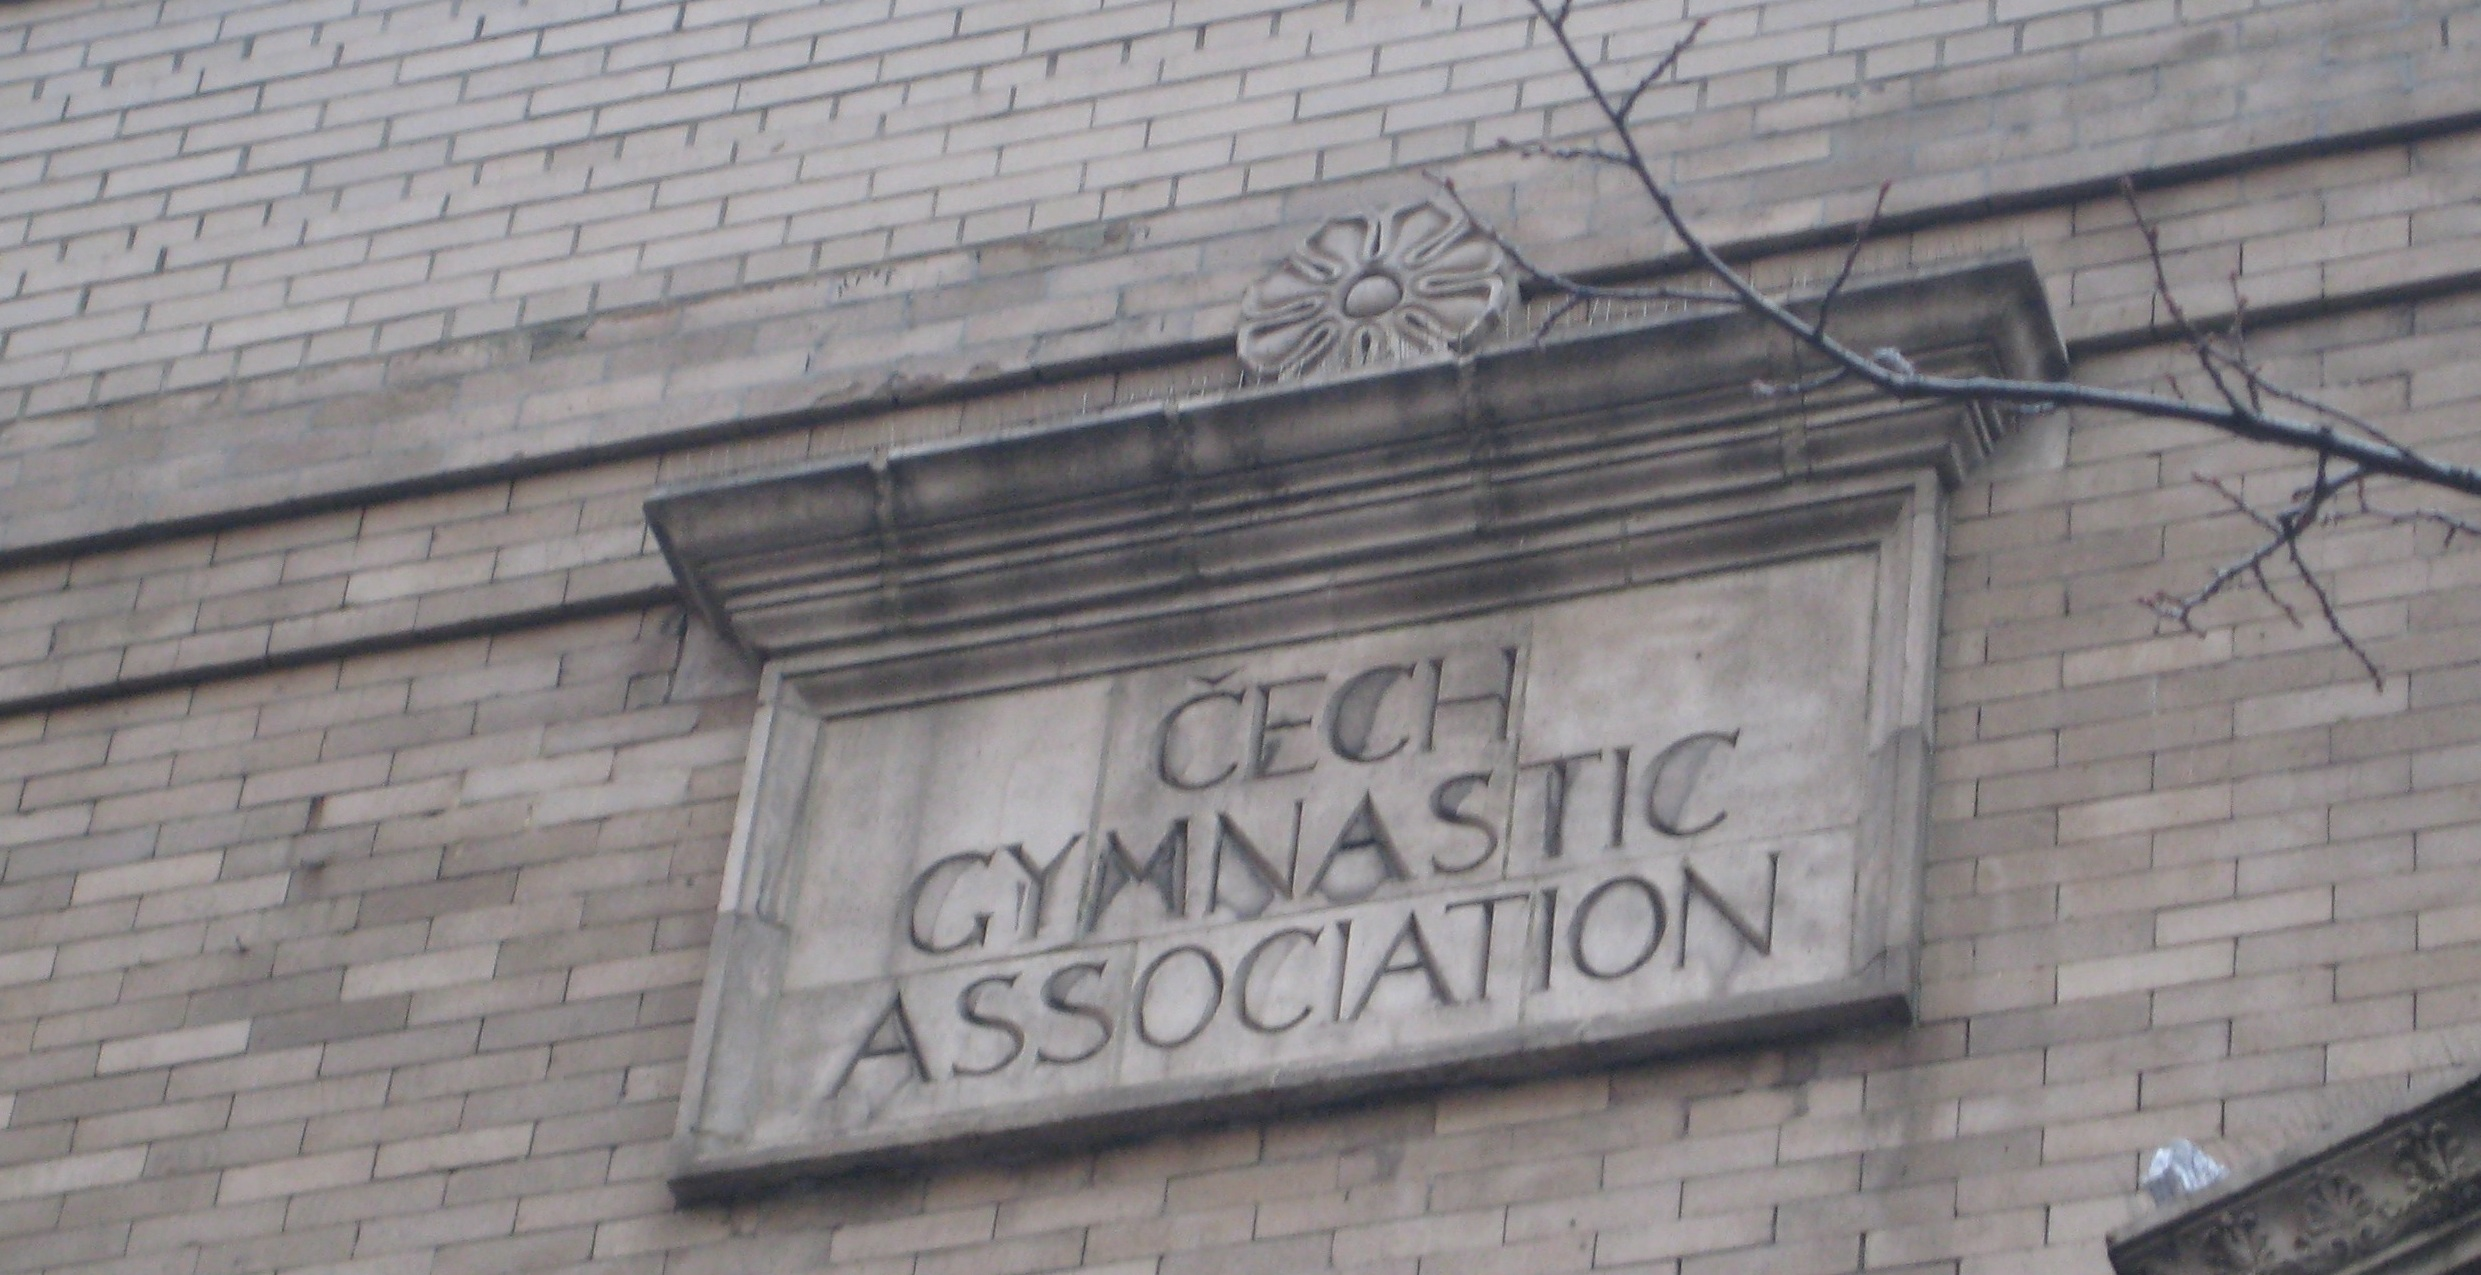 czechgymnasticassociation2